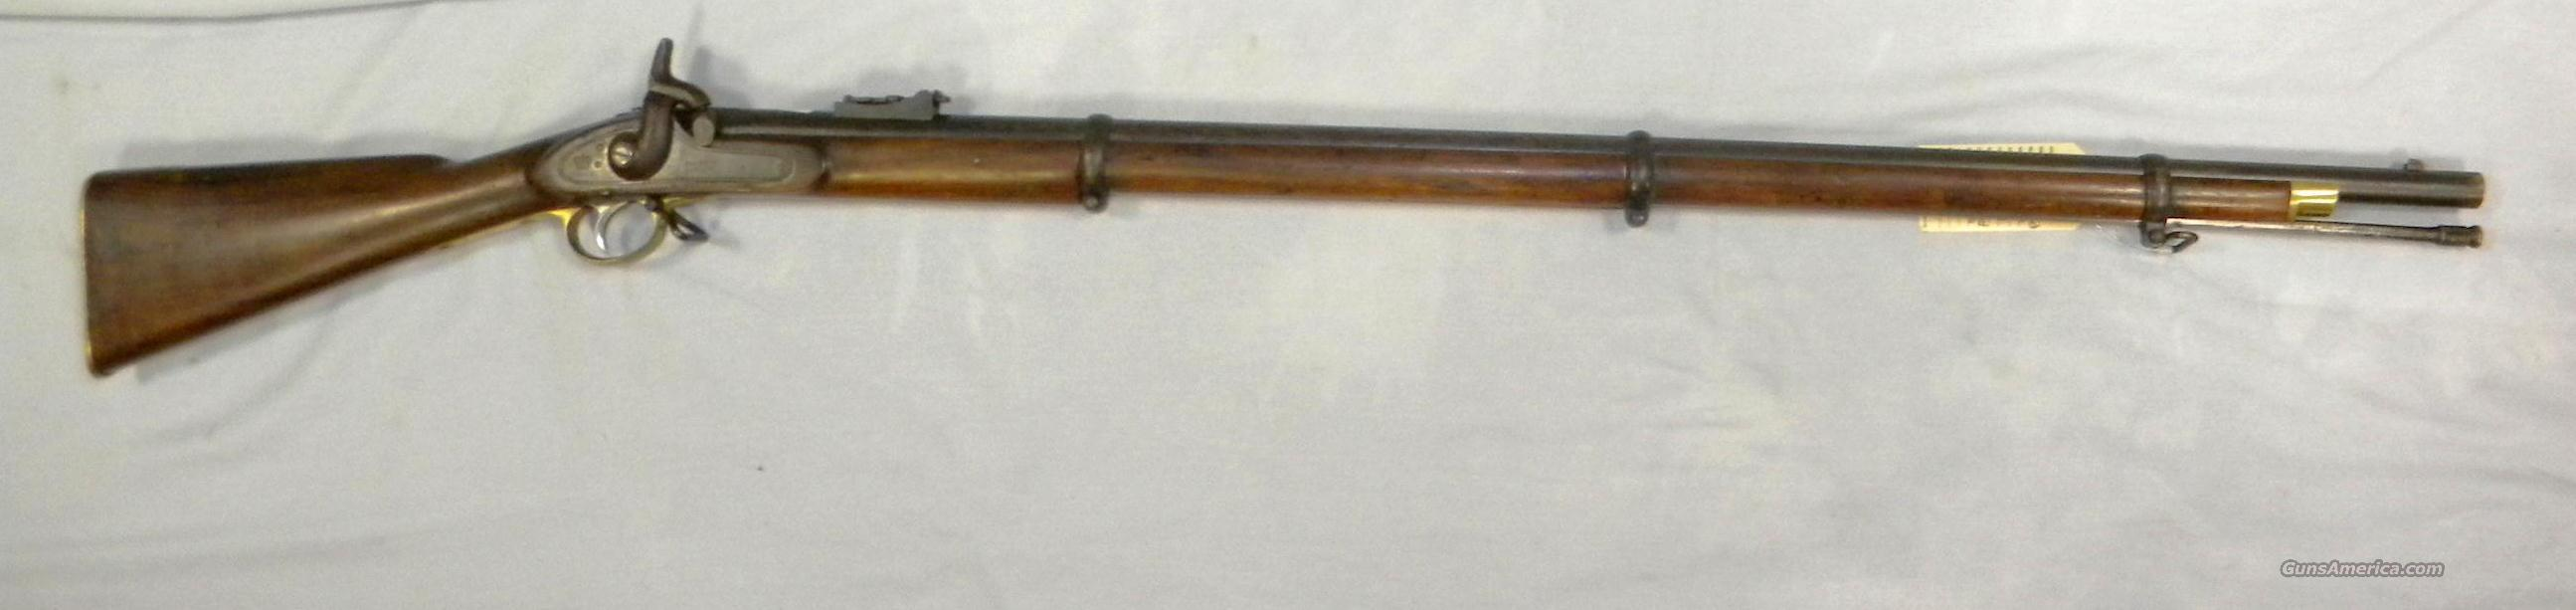 1853 Enfield Barnett P53 3-band Possible Confederate rifle